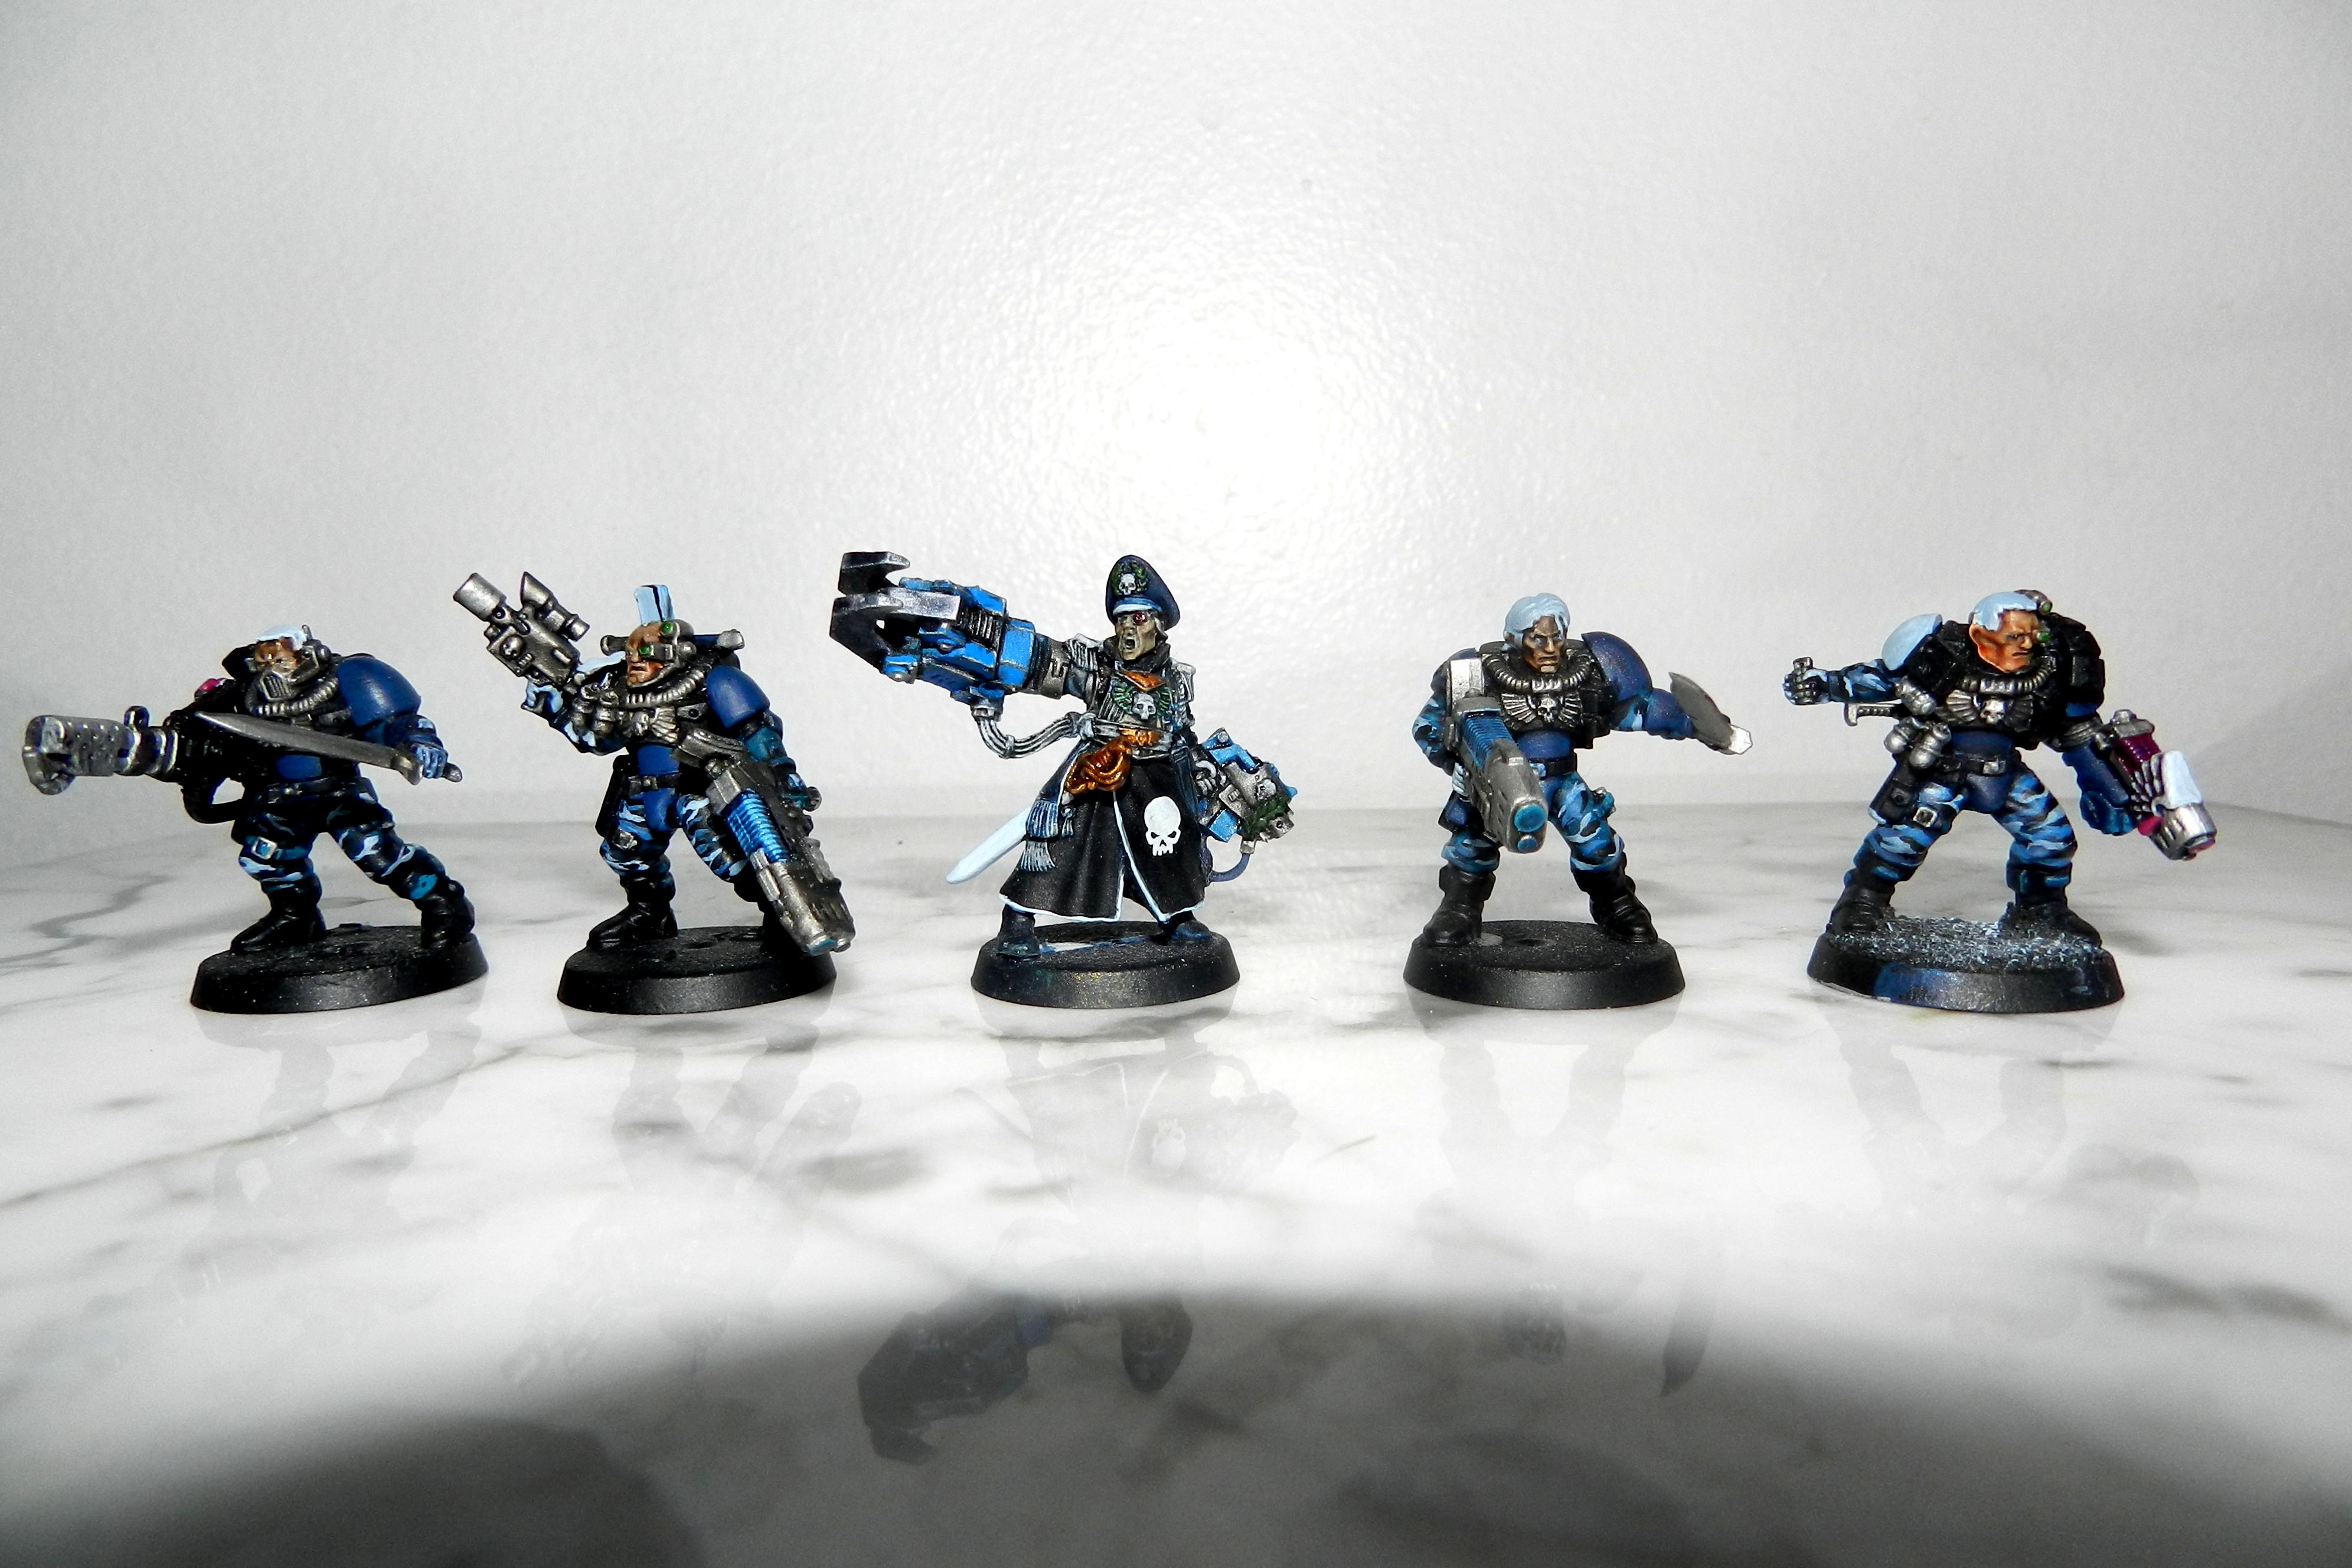 Adeptus Arbites, Armageddon, Bionics, Cadians, Camouflage, Captain, Carapace, Carapace Armour, Ccs, Colonel, Command Squad, Commander, Commissar, Commissar Yarrick, Company Command Squad, Flamer, Gaunt, Gears Of War, Grenadier, Guardsmen, Imperial Guard, Lord Commissar, Medic, Meltagun, Plasma Gun, Power Klaw, Scouts, Space Wolves, Special Character, Storm Bolter, Urban, Urban Camo, Warhammer 40,000, Work In Progress, Yarrick